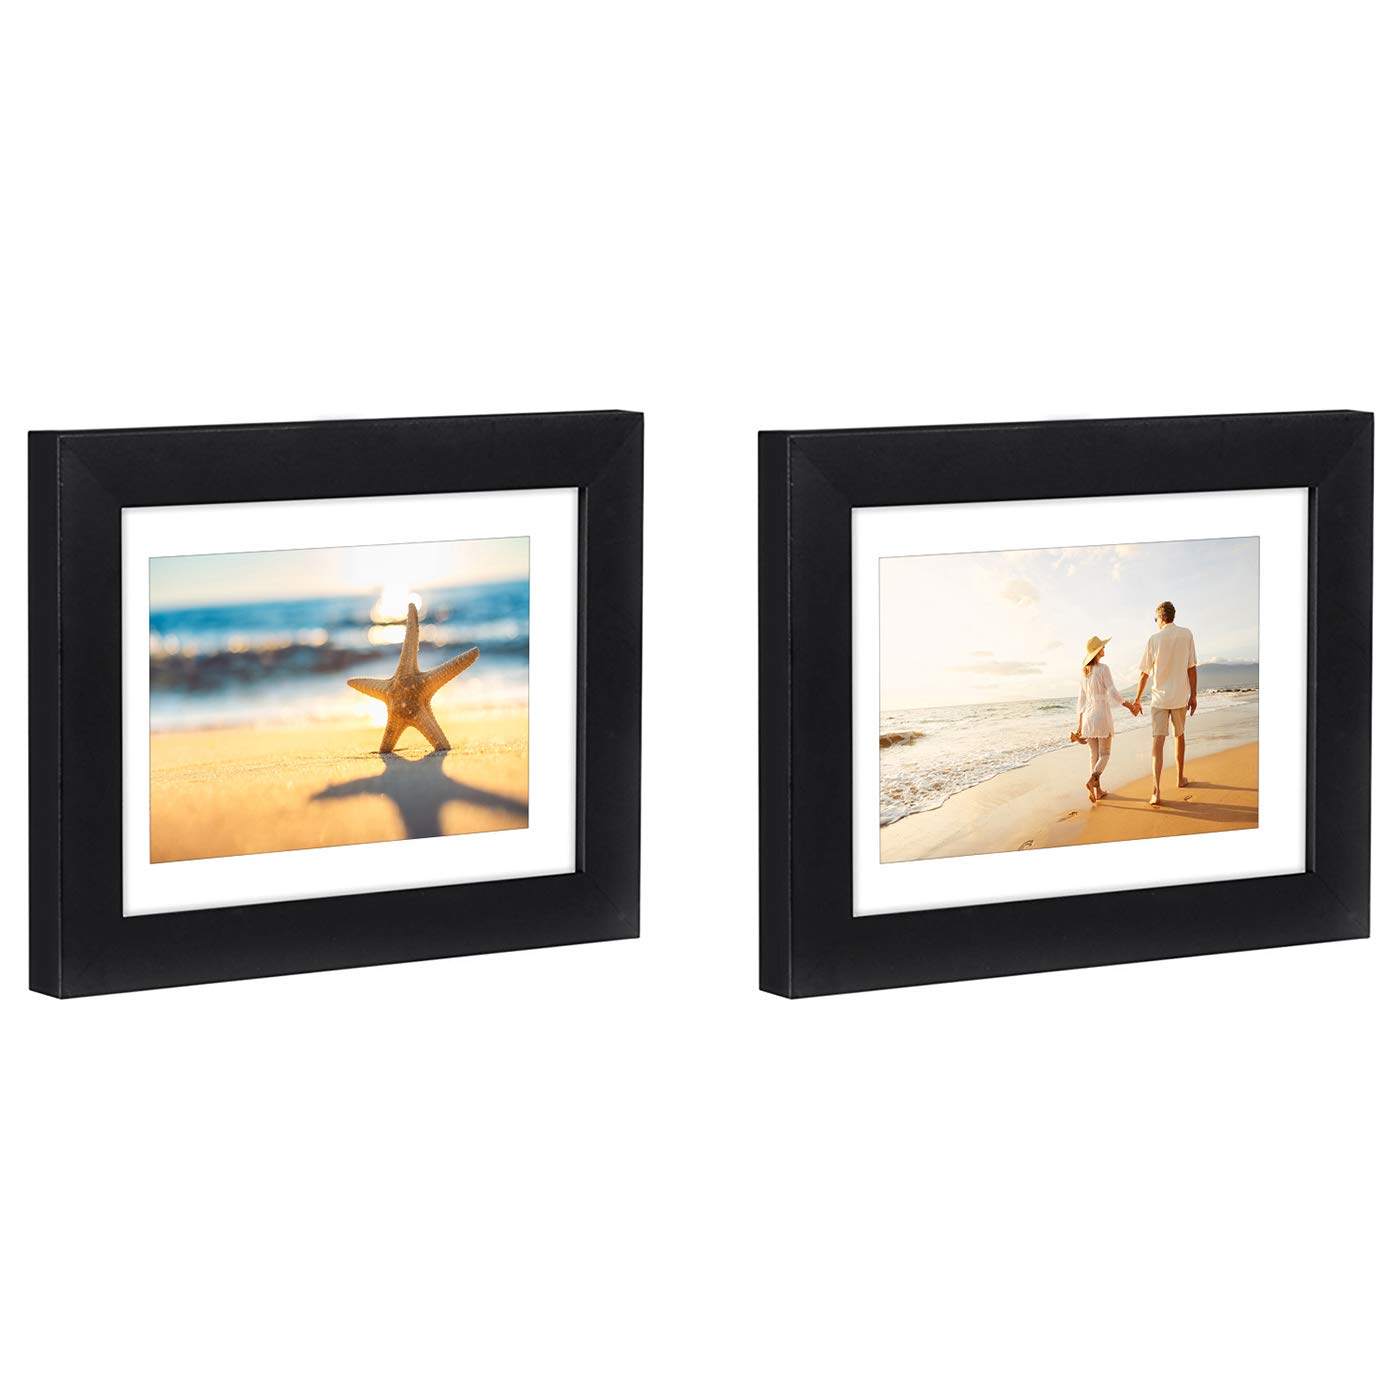 Americanflat 2 Pack - 5x7 Tabletop Frames - Display Pictures 4x6 with Mat - Display Pictures 5x7 Without Mat - Glass Fronts, Easel Stands, Ready to Display on Tabletop MW0507BK2PK